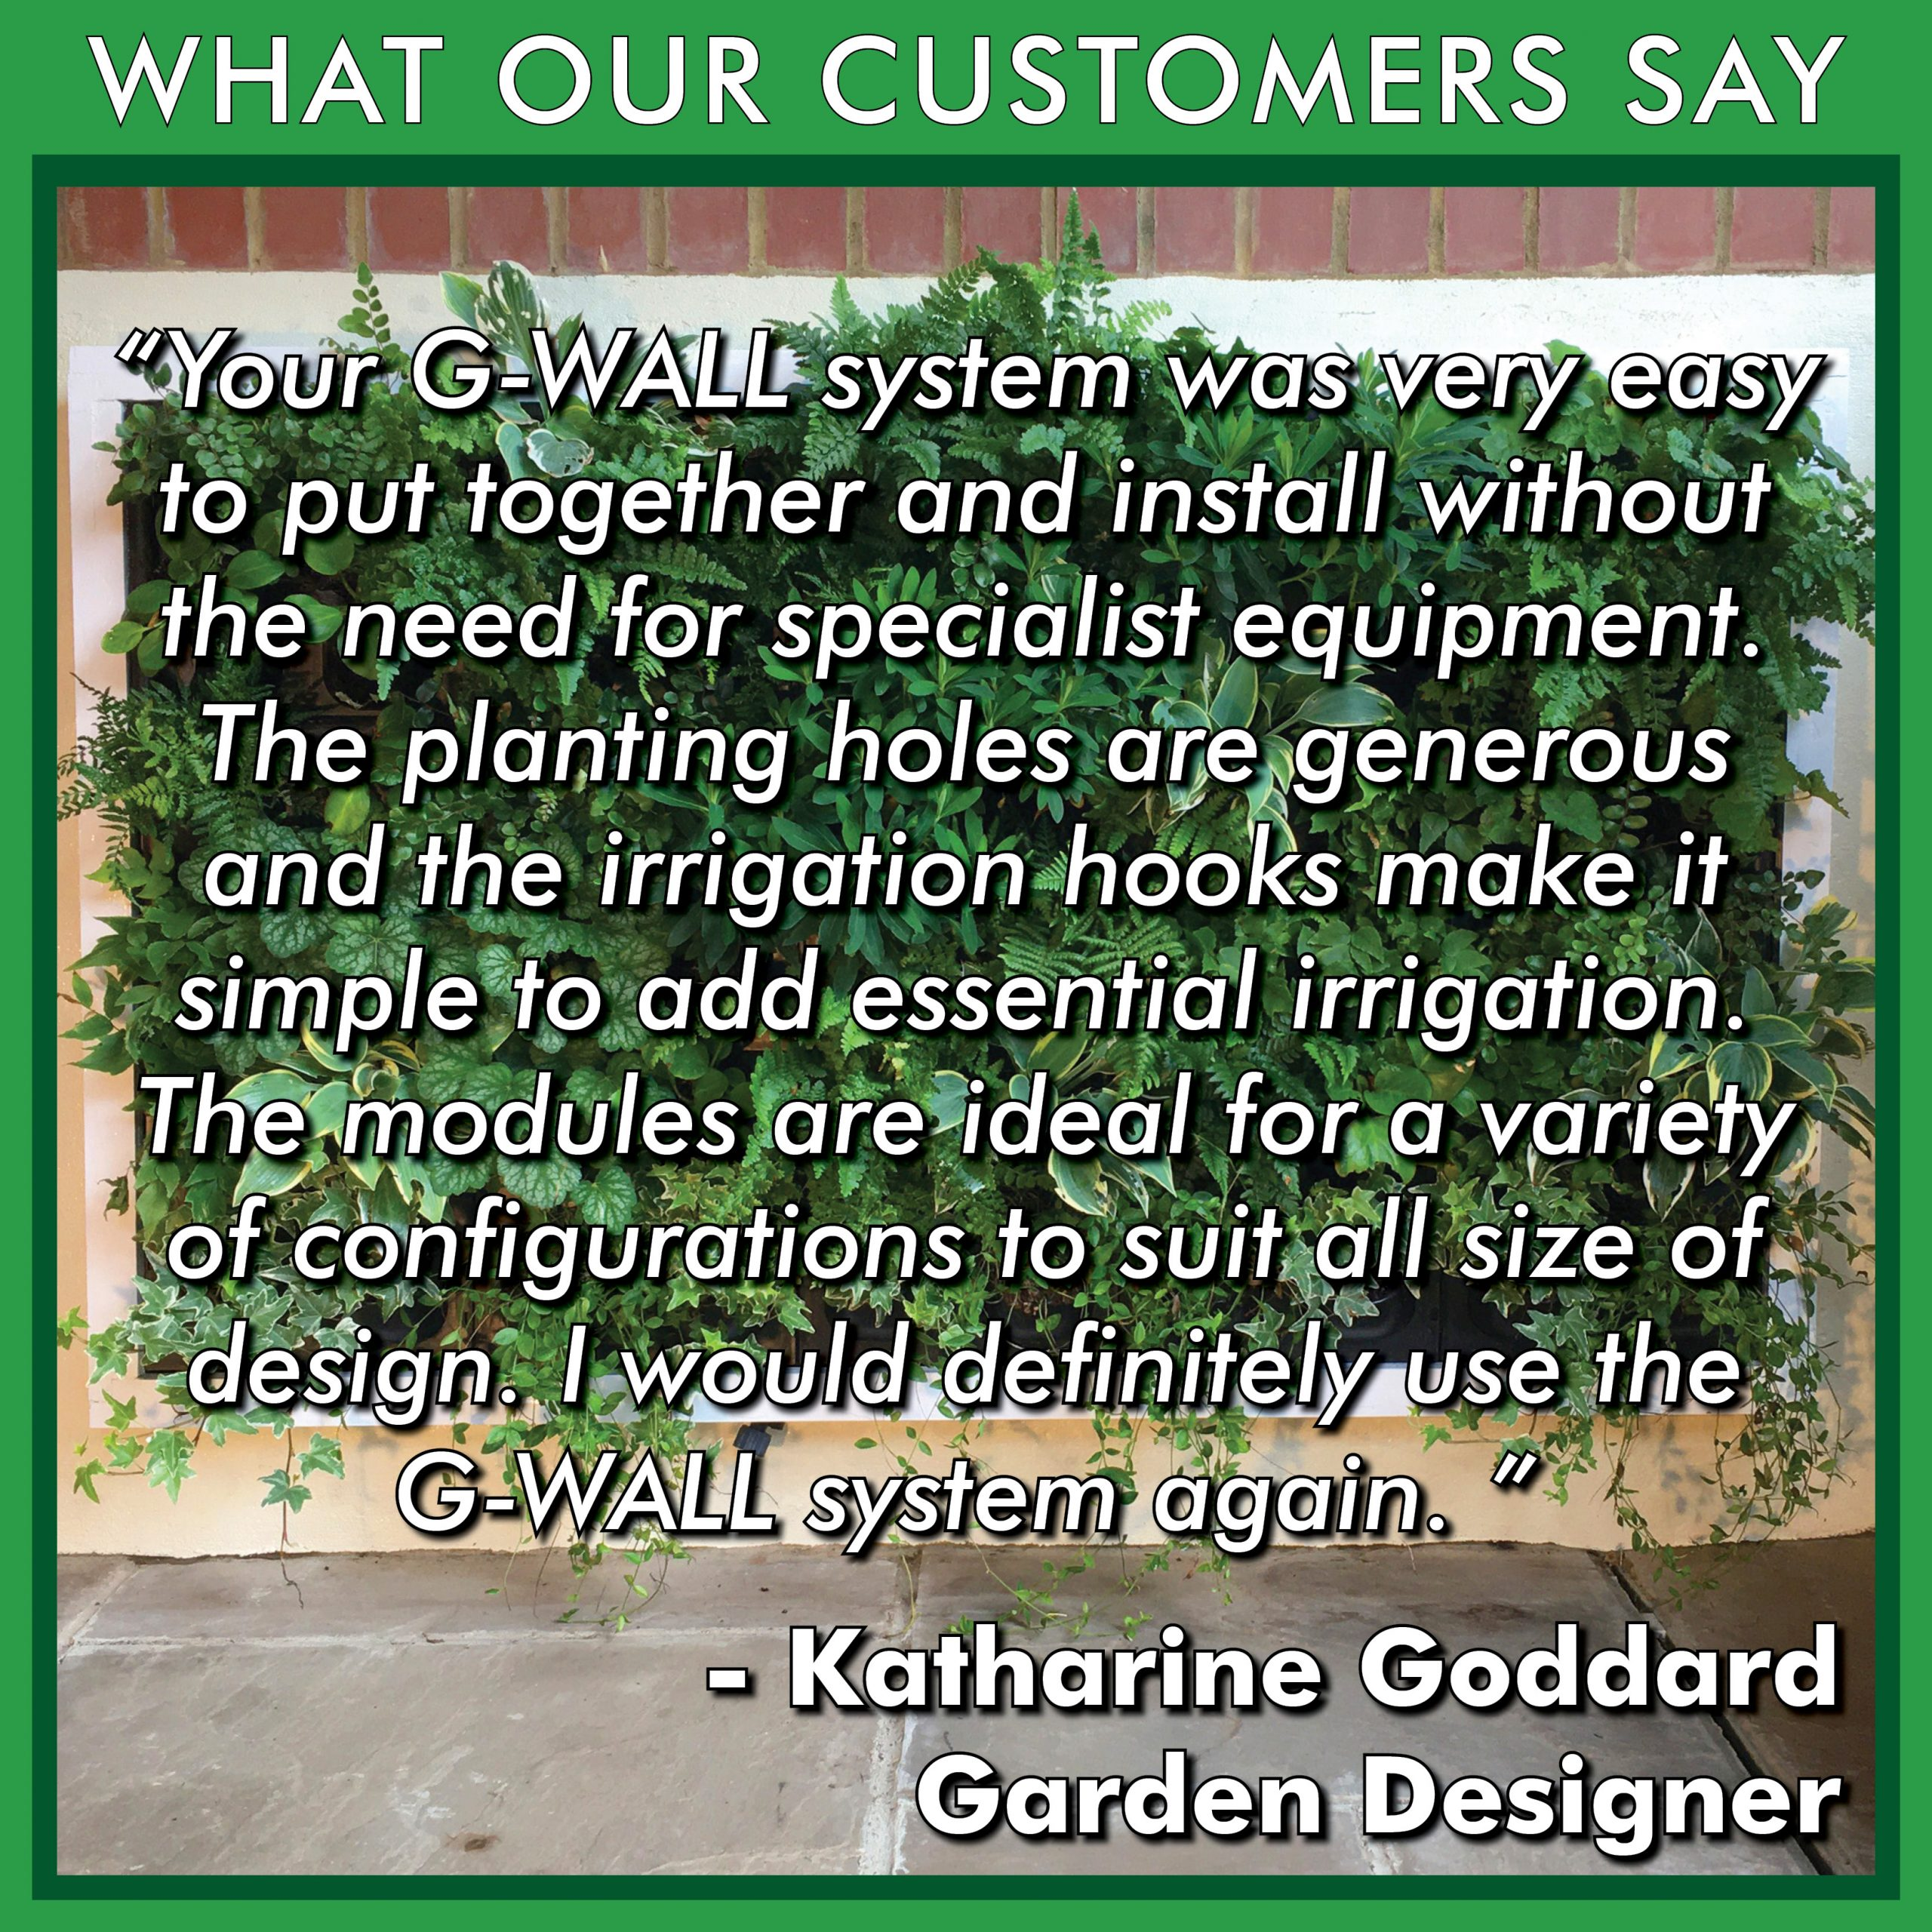 What our Customers Say - Review by Katharine Goddard